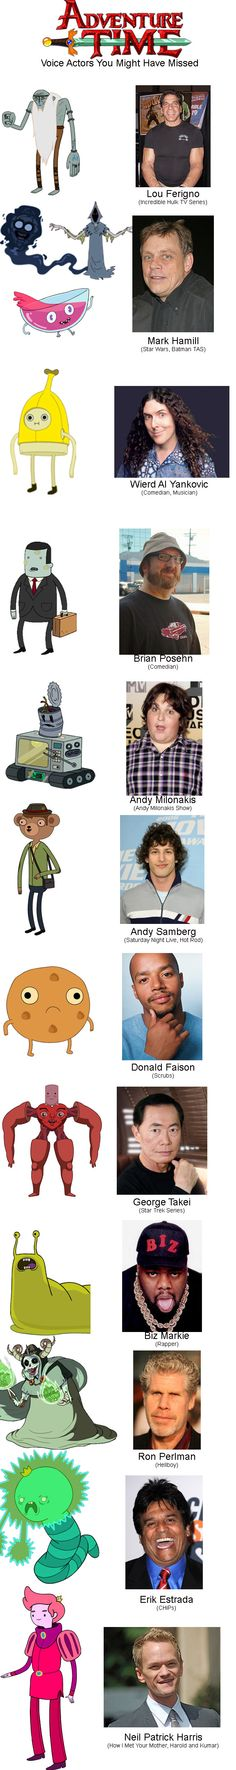 Adventure Time voice actors you may have missed